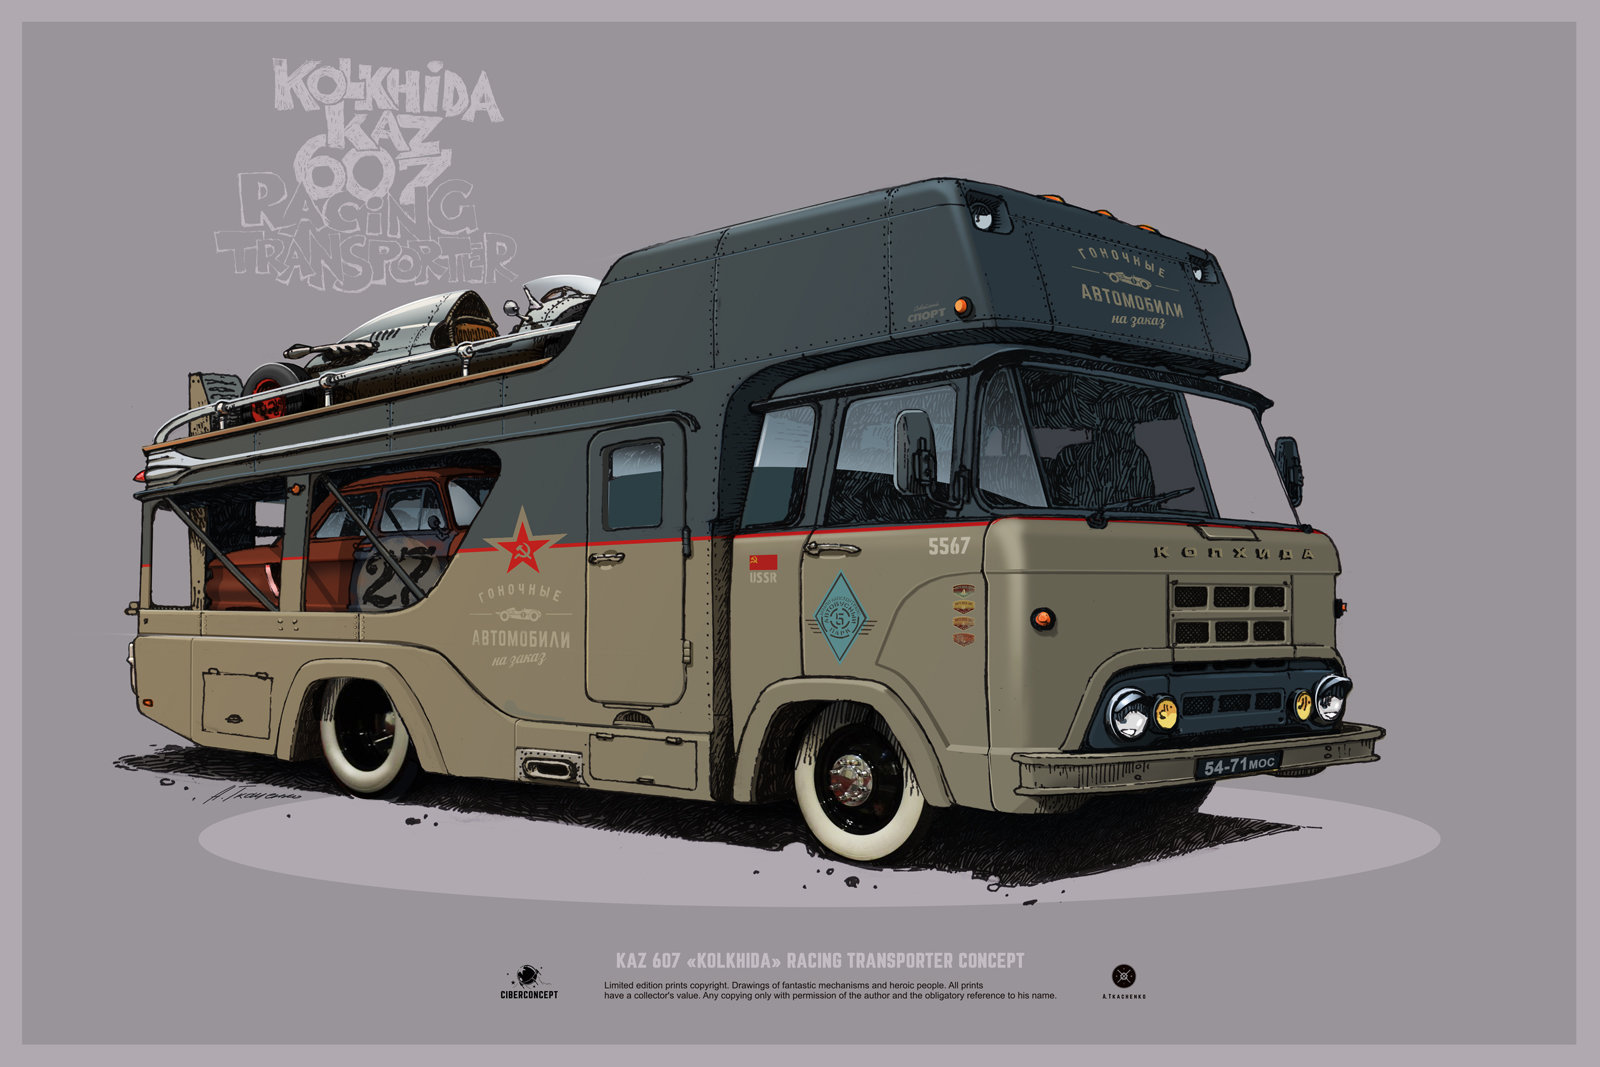 Concepts of Soviet cars on pictures - KAZ-607 KOLKHIDA Racing Transporter